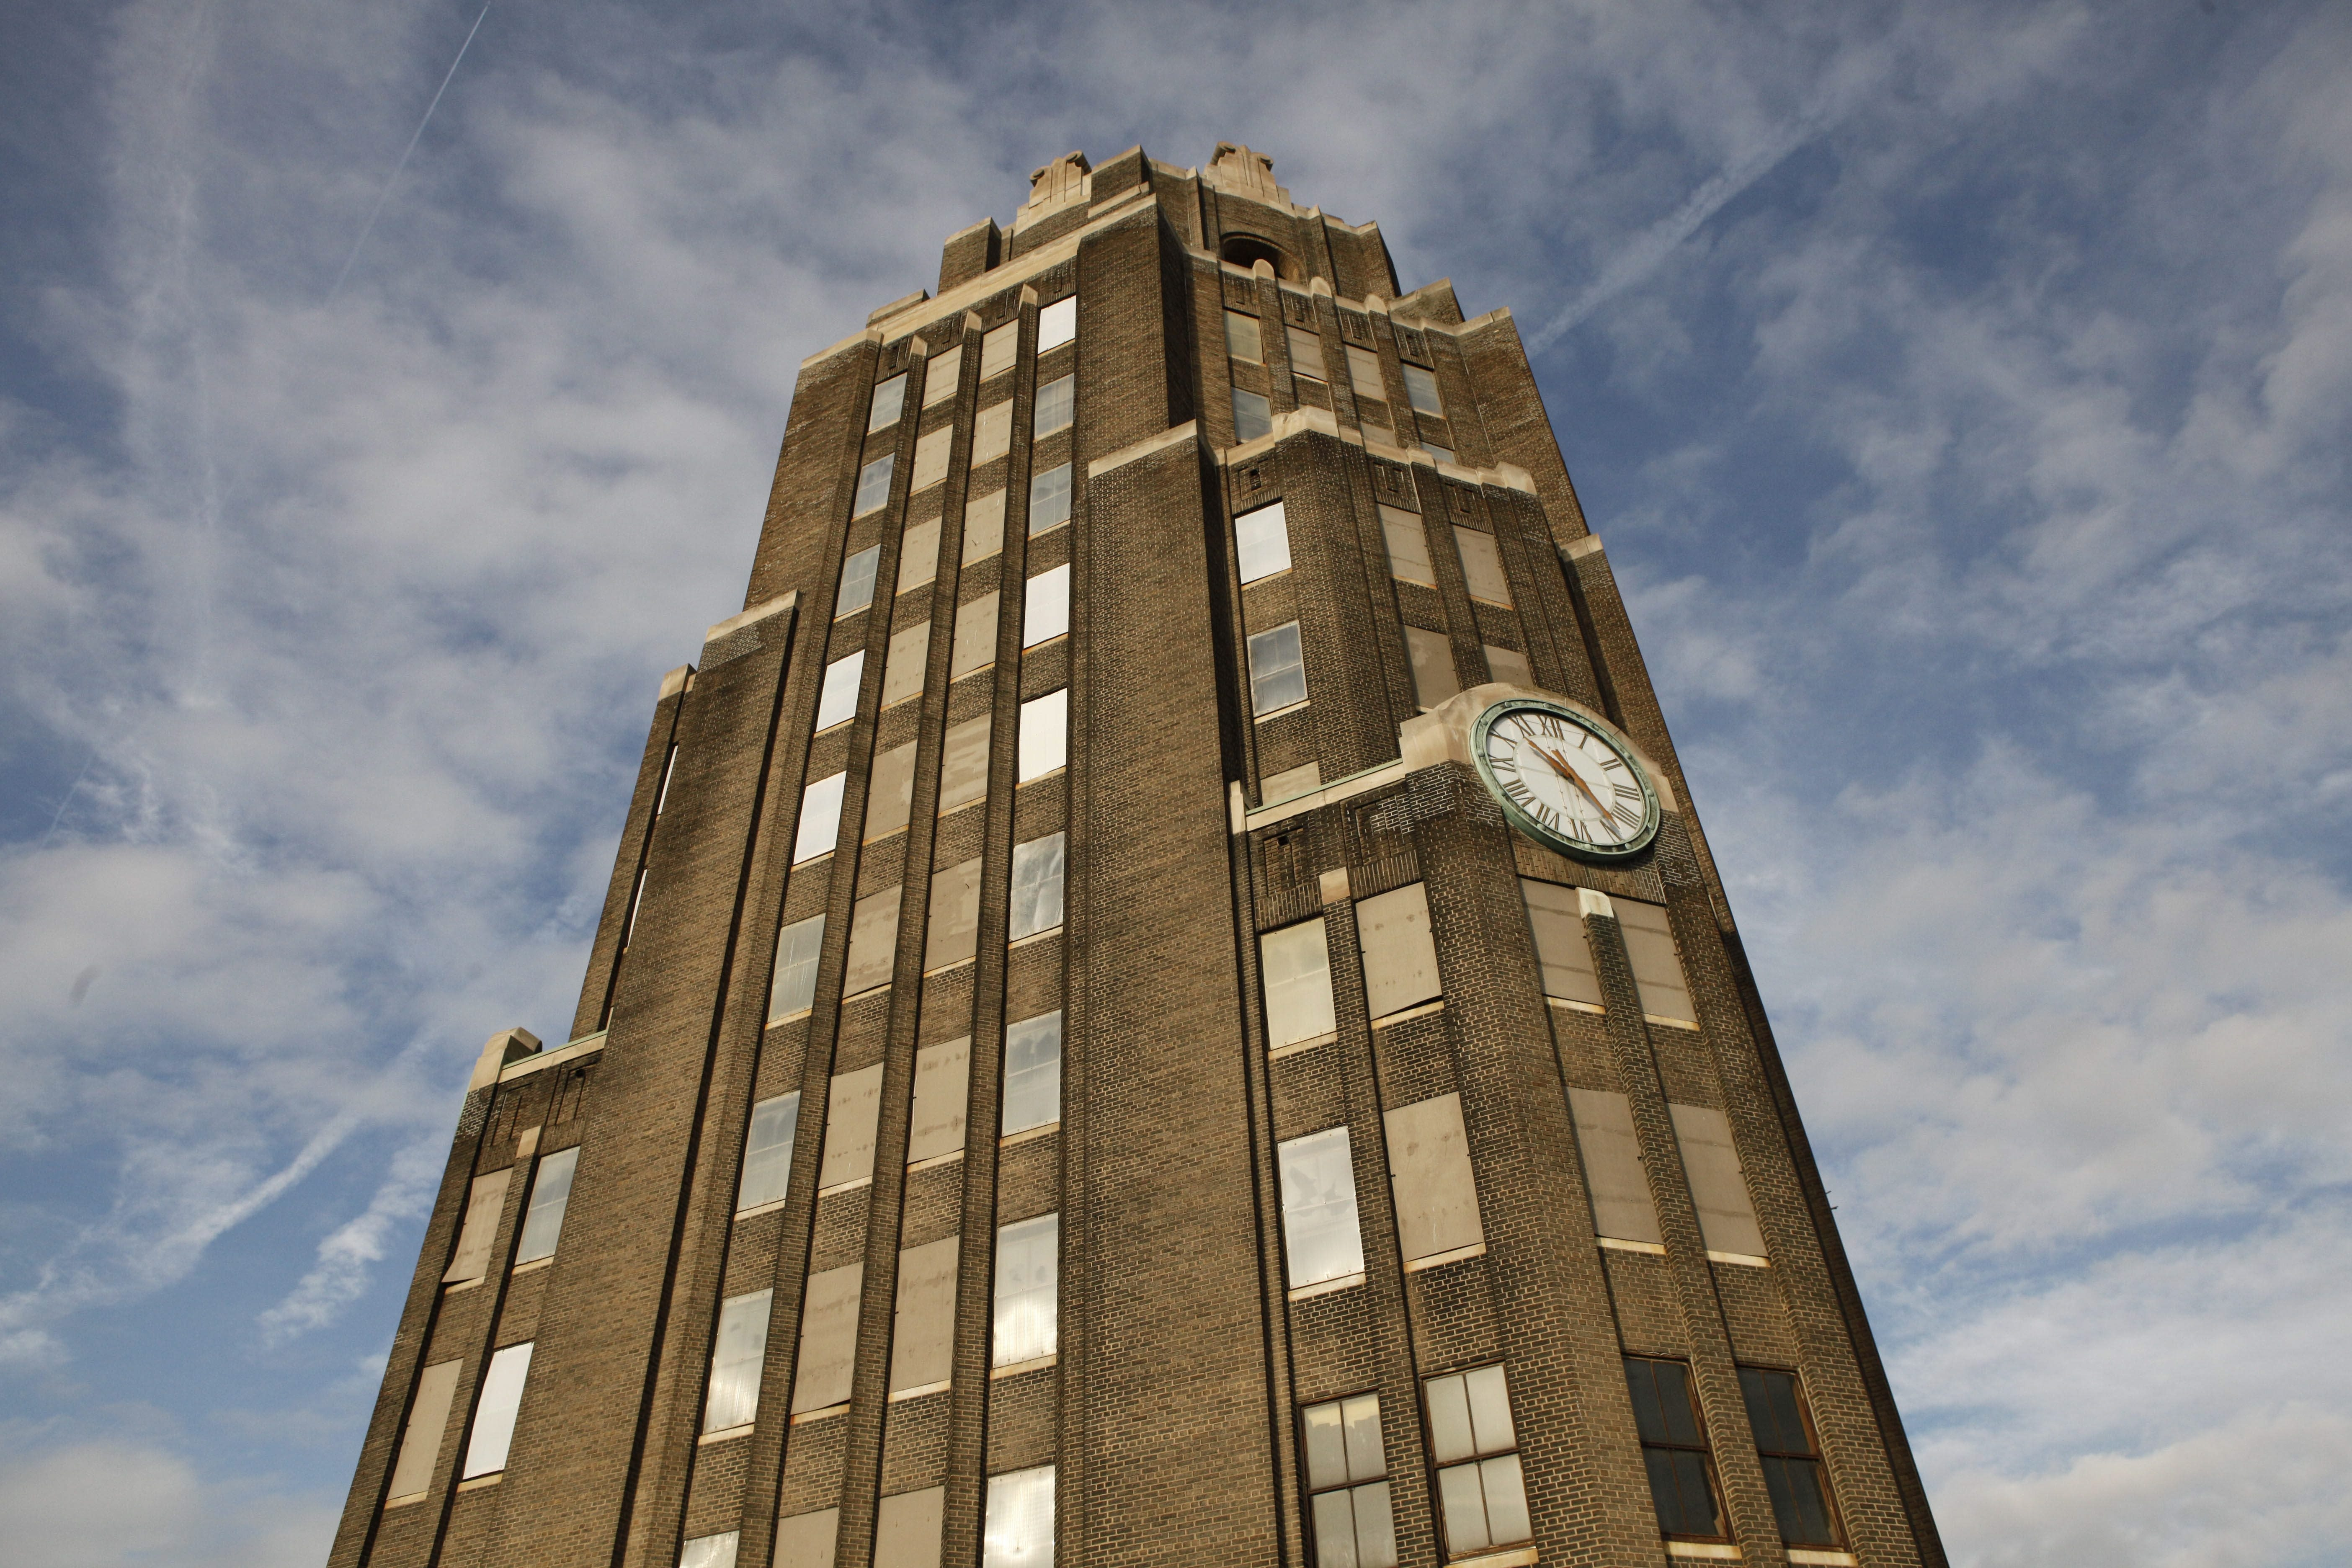 A Canadian developer's plans for Buffalo's Central Terminal offer at least some hope of reclaiming one of Buffalo's endangered treasures.